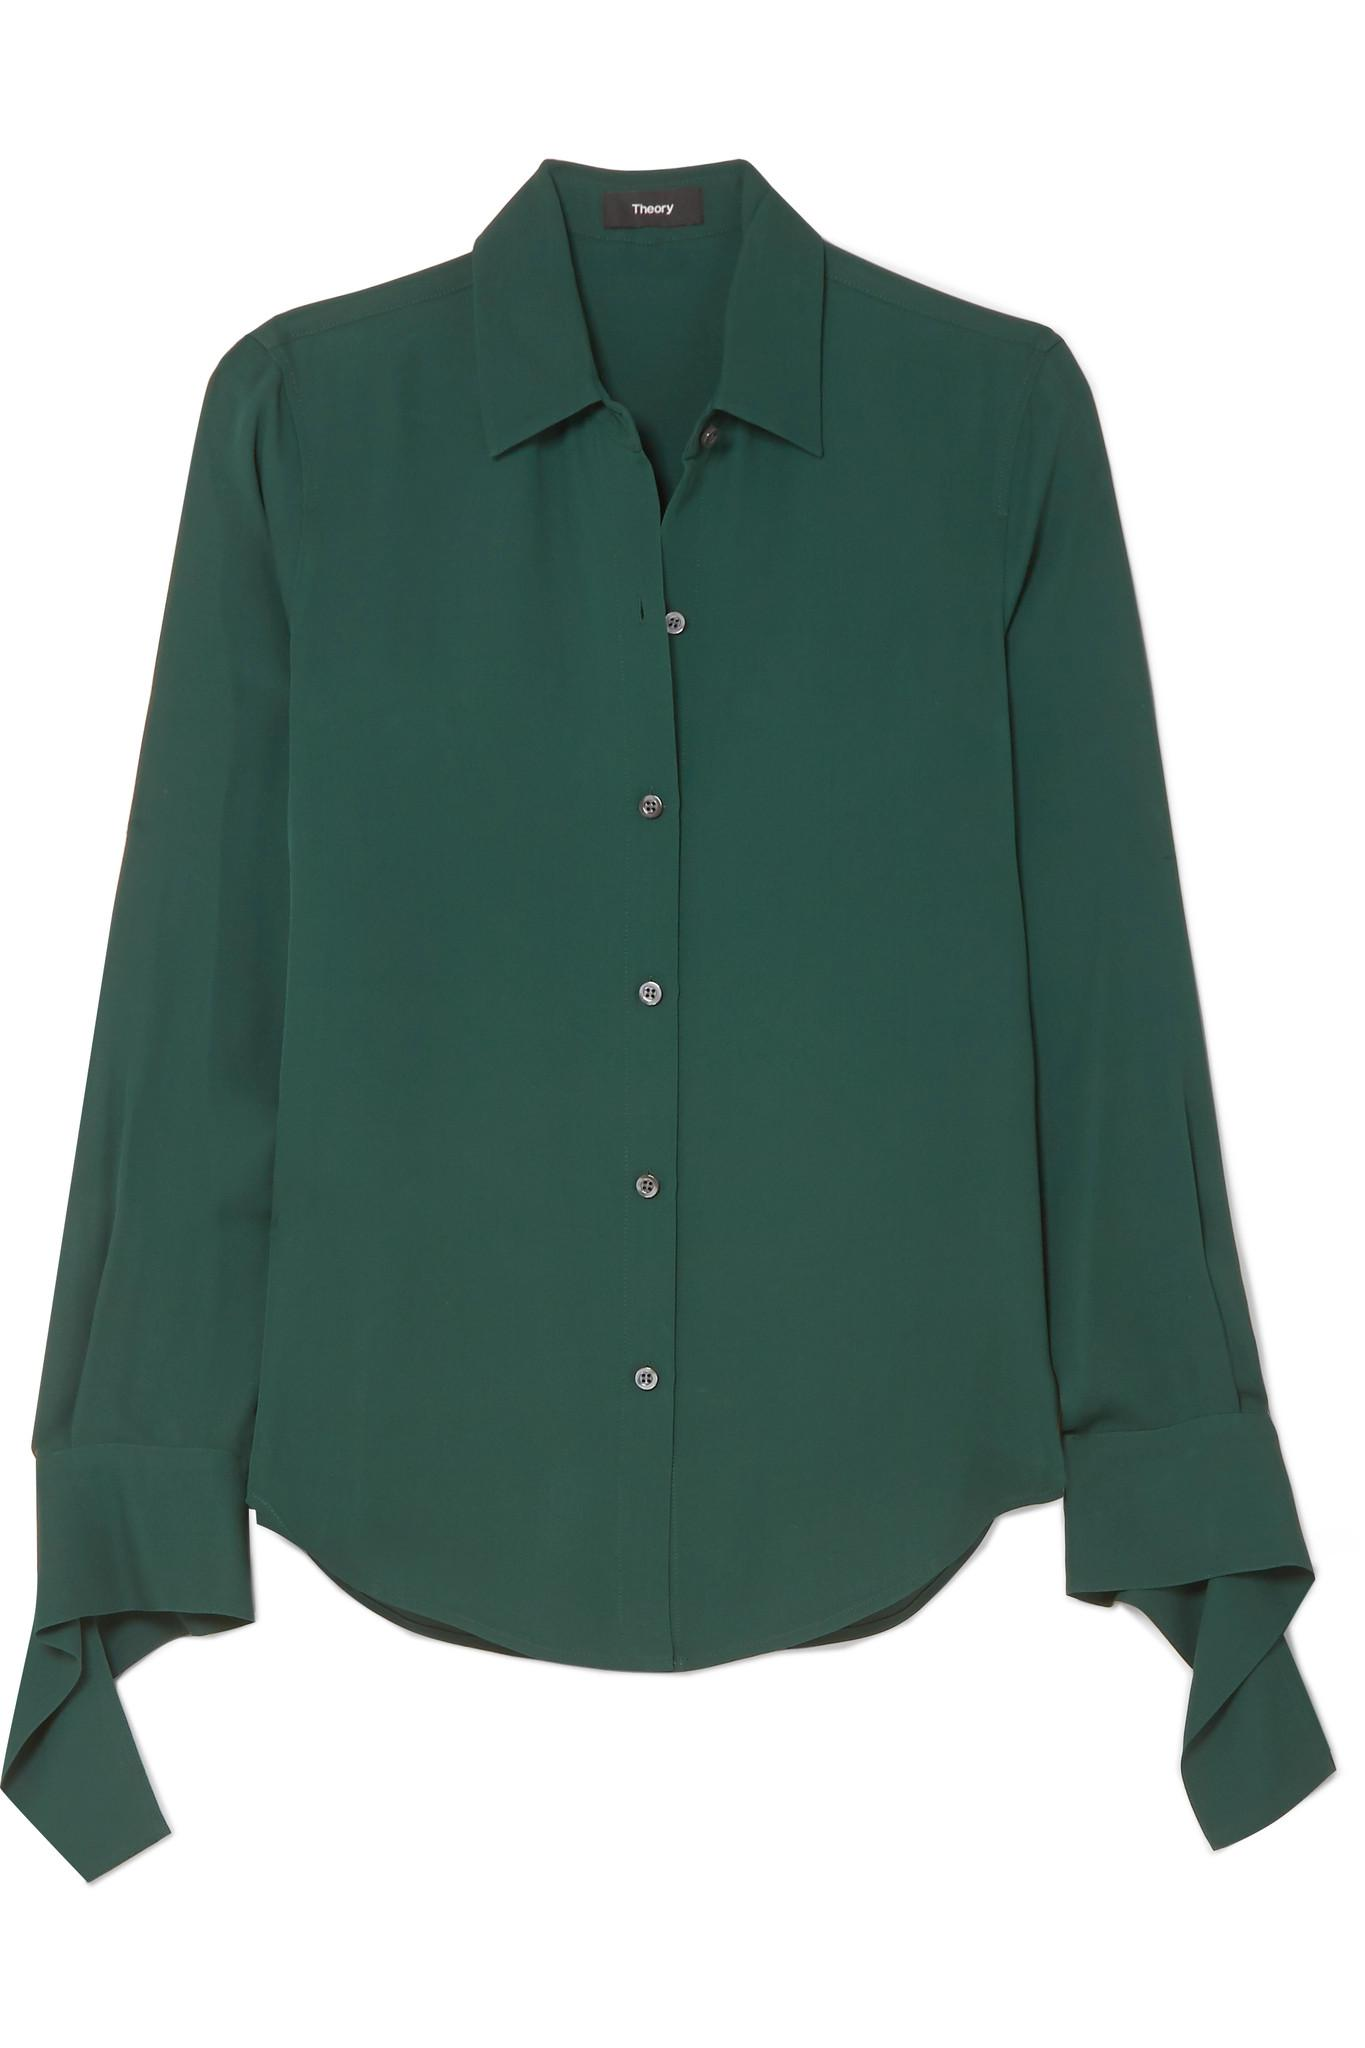 8bd16bce580a8e Theory Silk-crepe Shirt in Green - Lyst